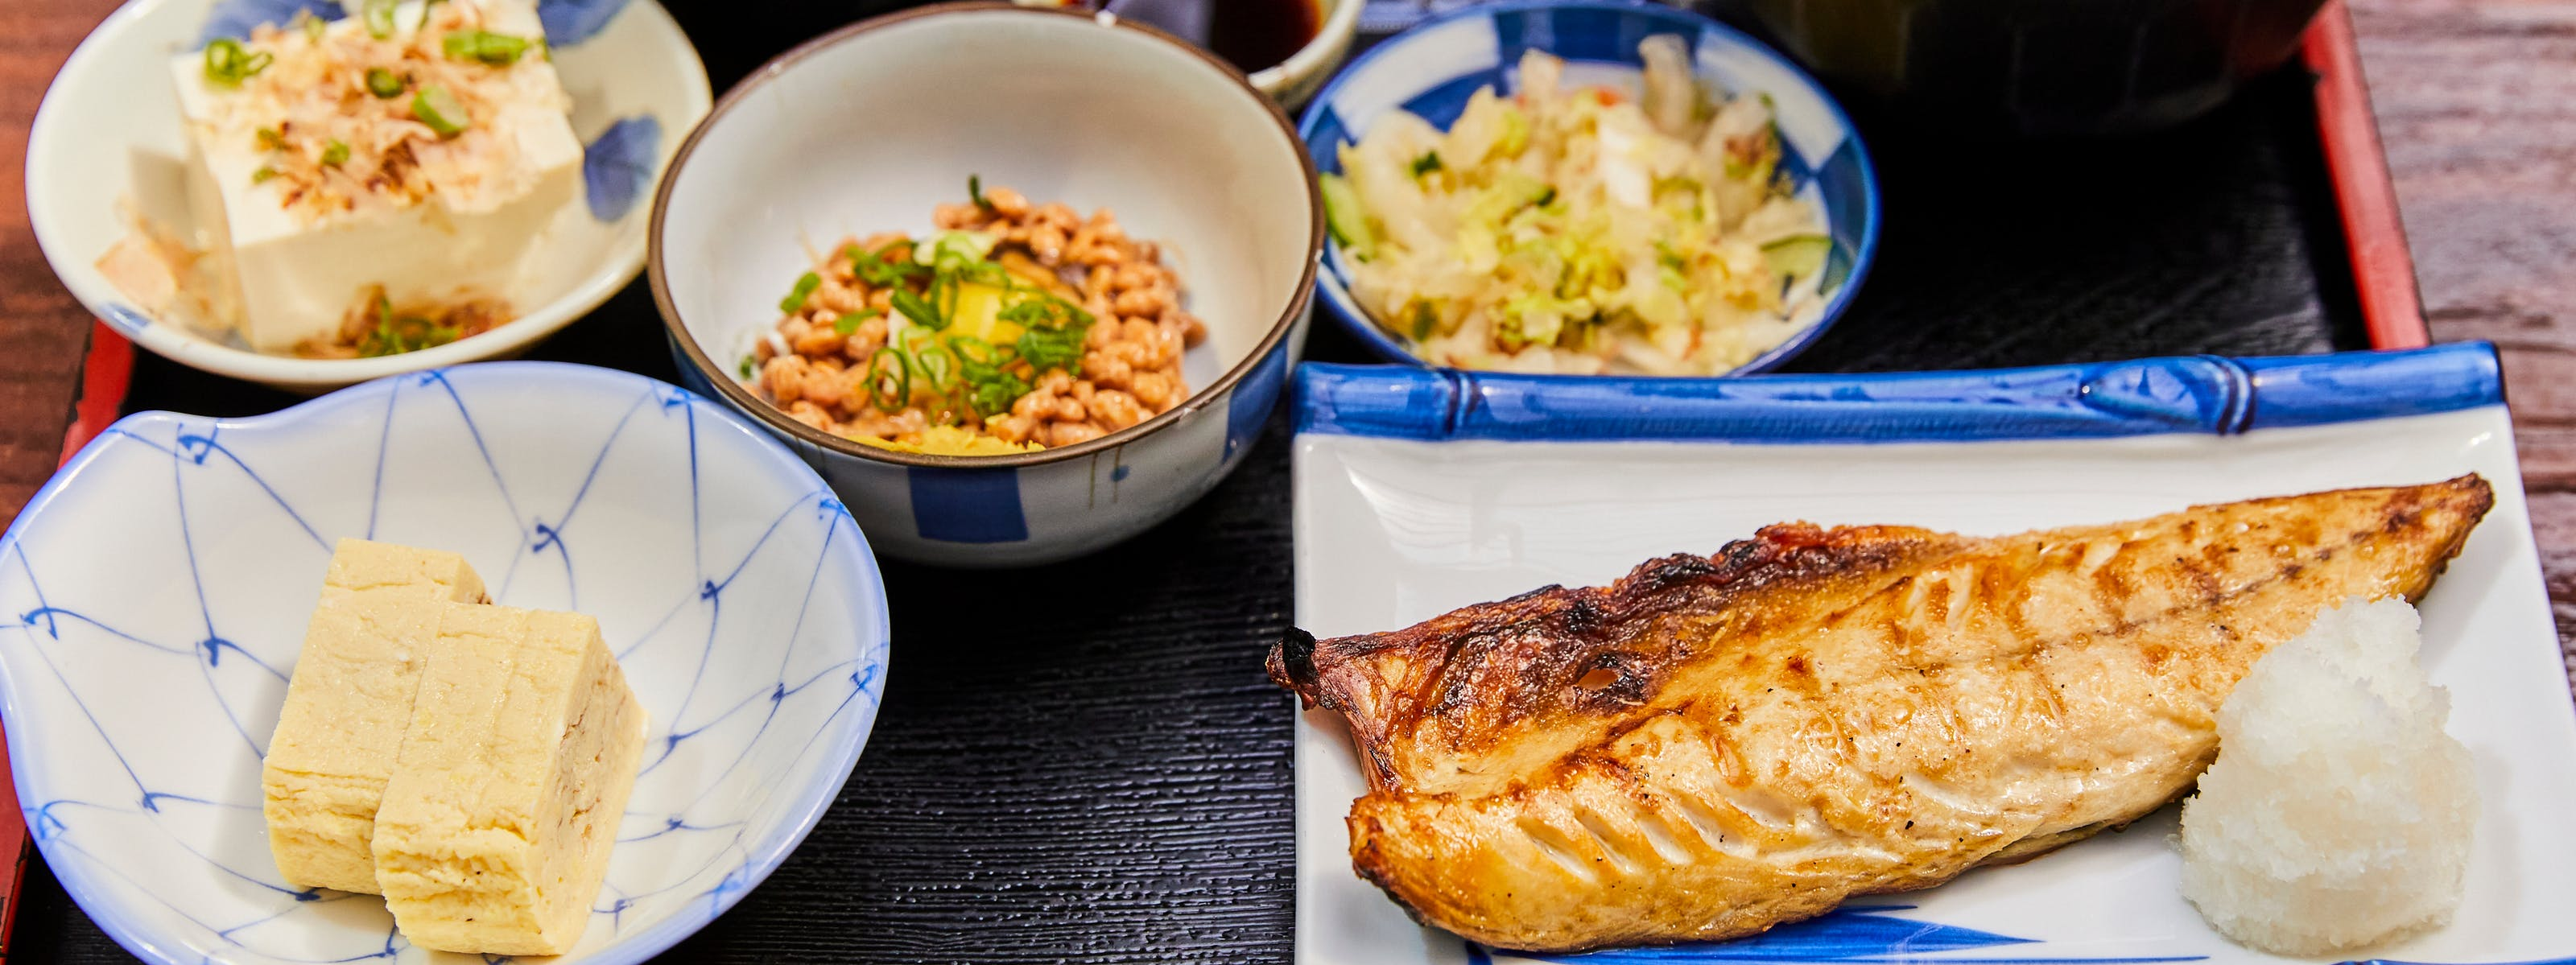 Where To Find Japanese Breakfast In LA - Los Angeles - The Infatuation